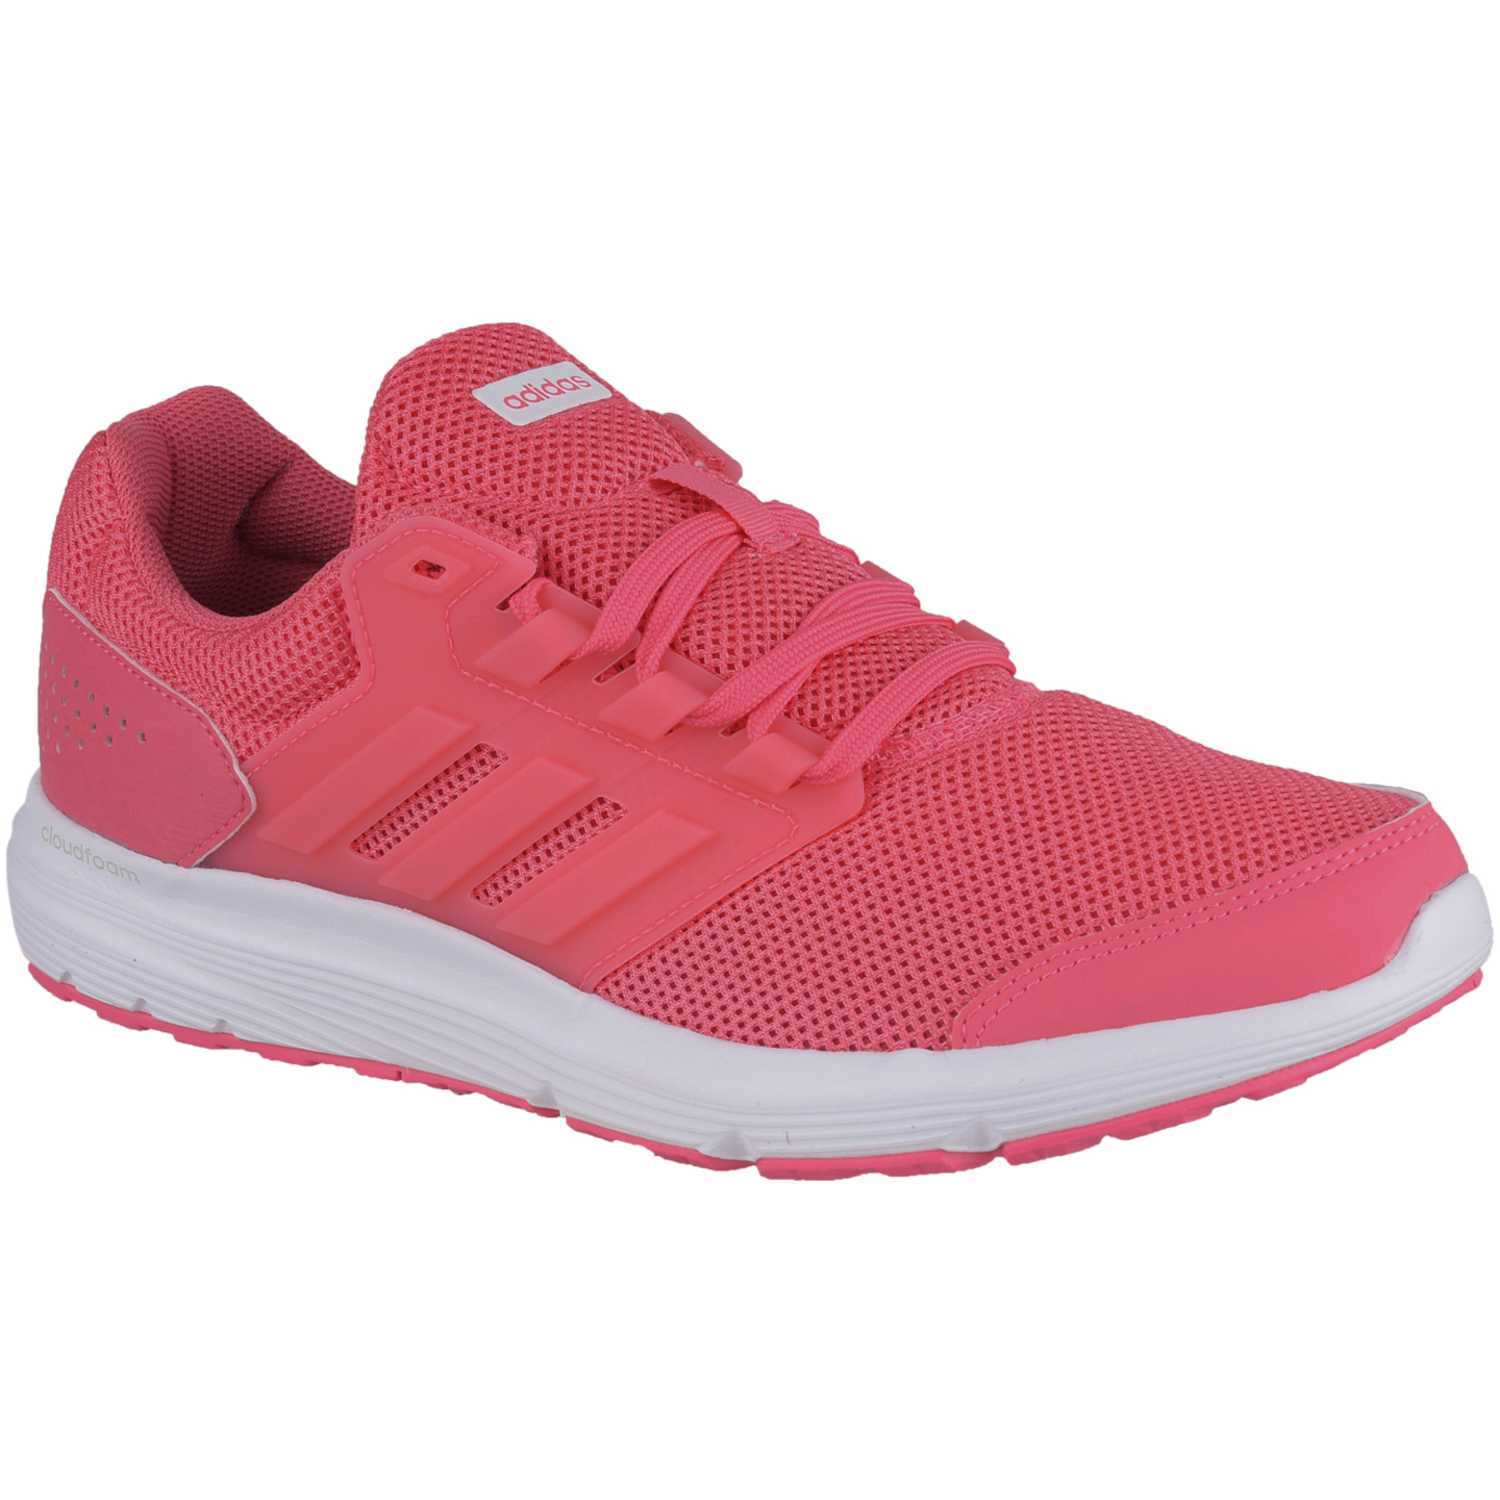 Adidas galaxy 4 Rosado / blanco Trail Running | platanitos.com